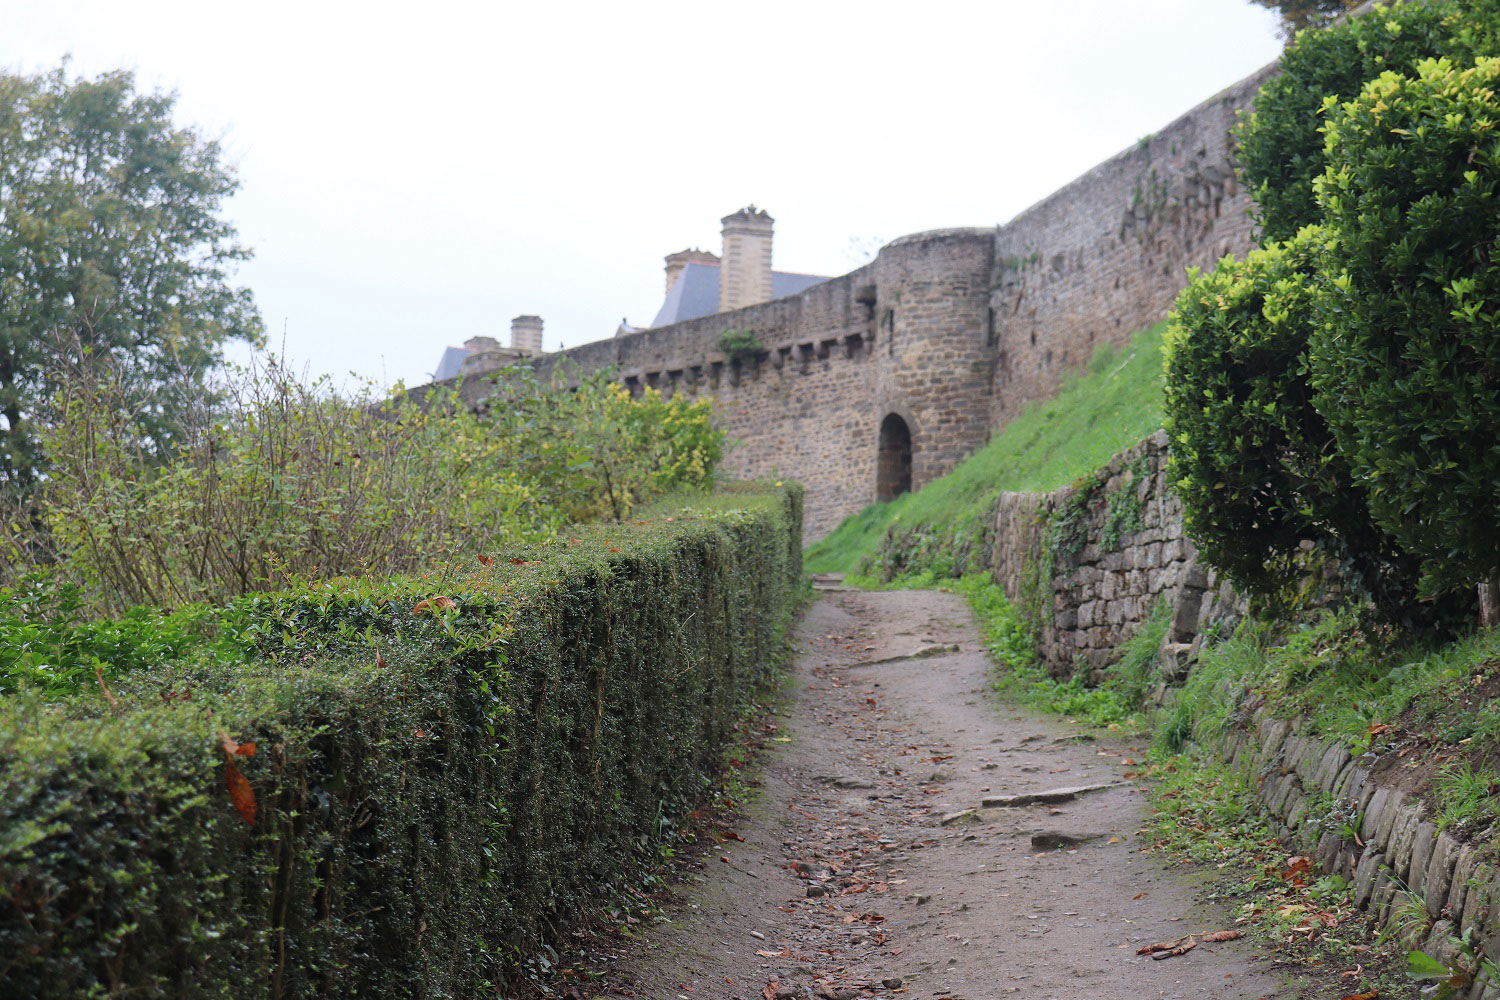 The medieval walls of Dinan